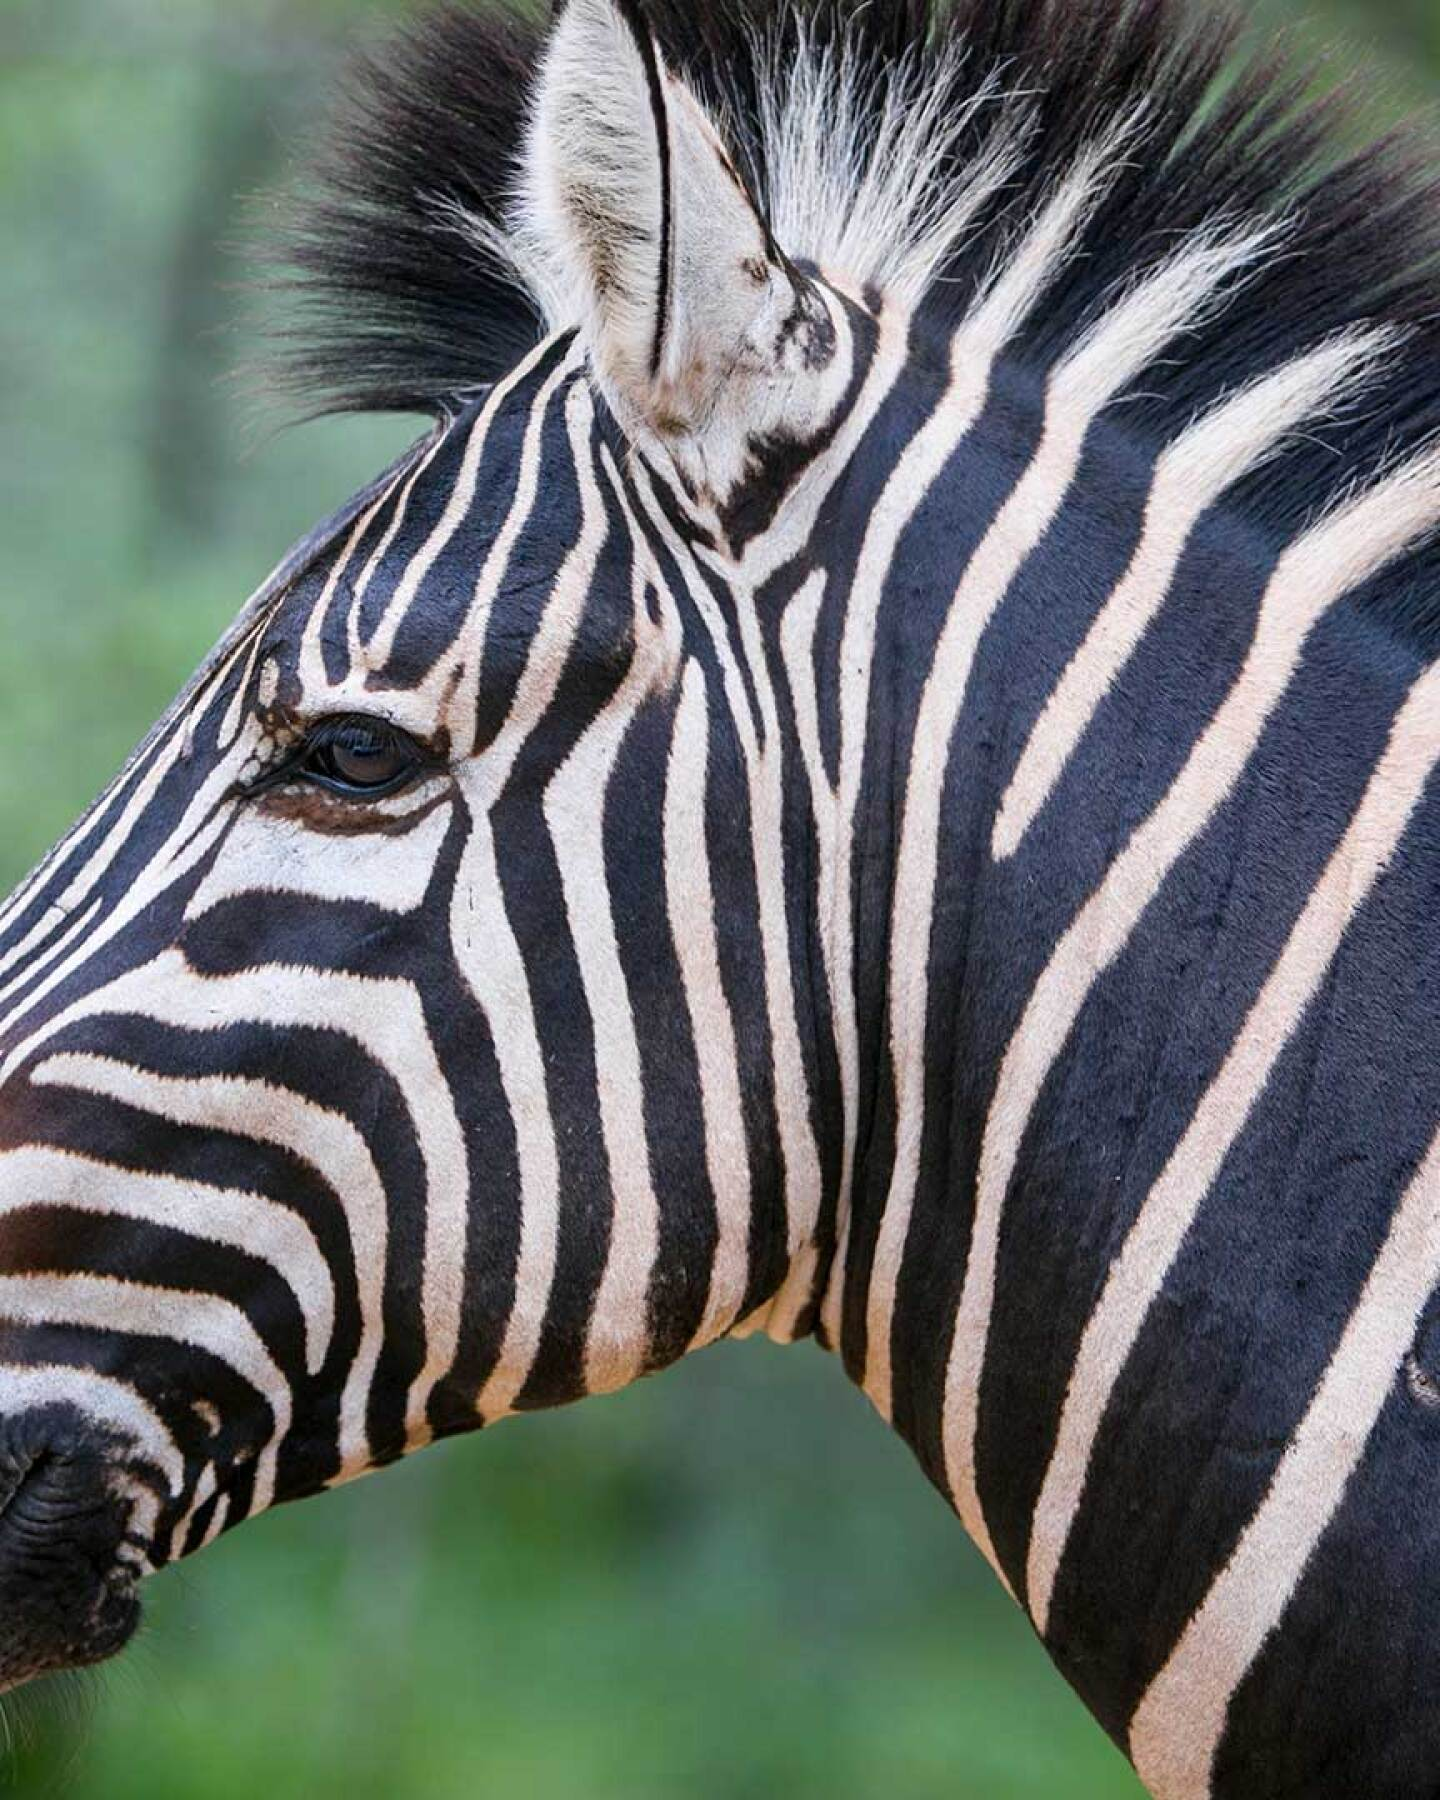 Zebra in South Africa's Kruger National Park.